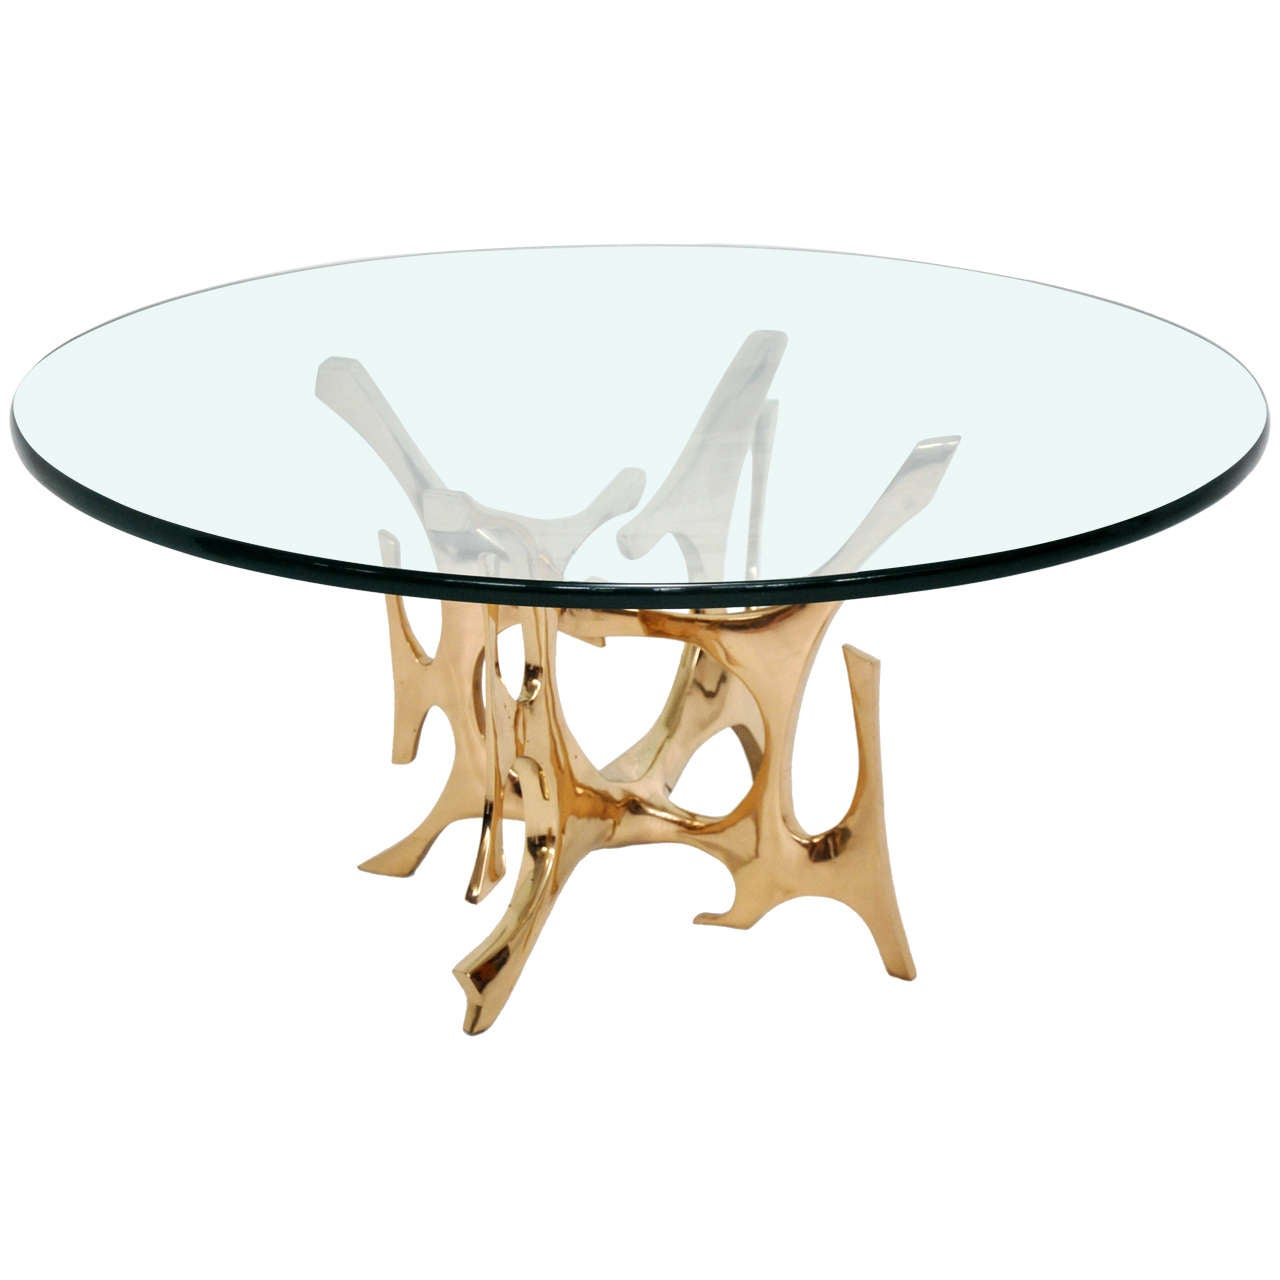 fred brouard bronze sculpture coffee table at 1stdibs